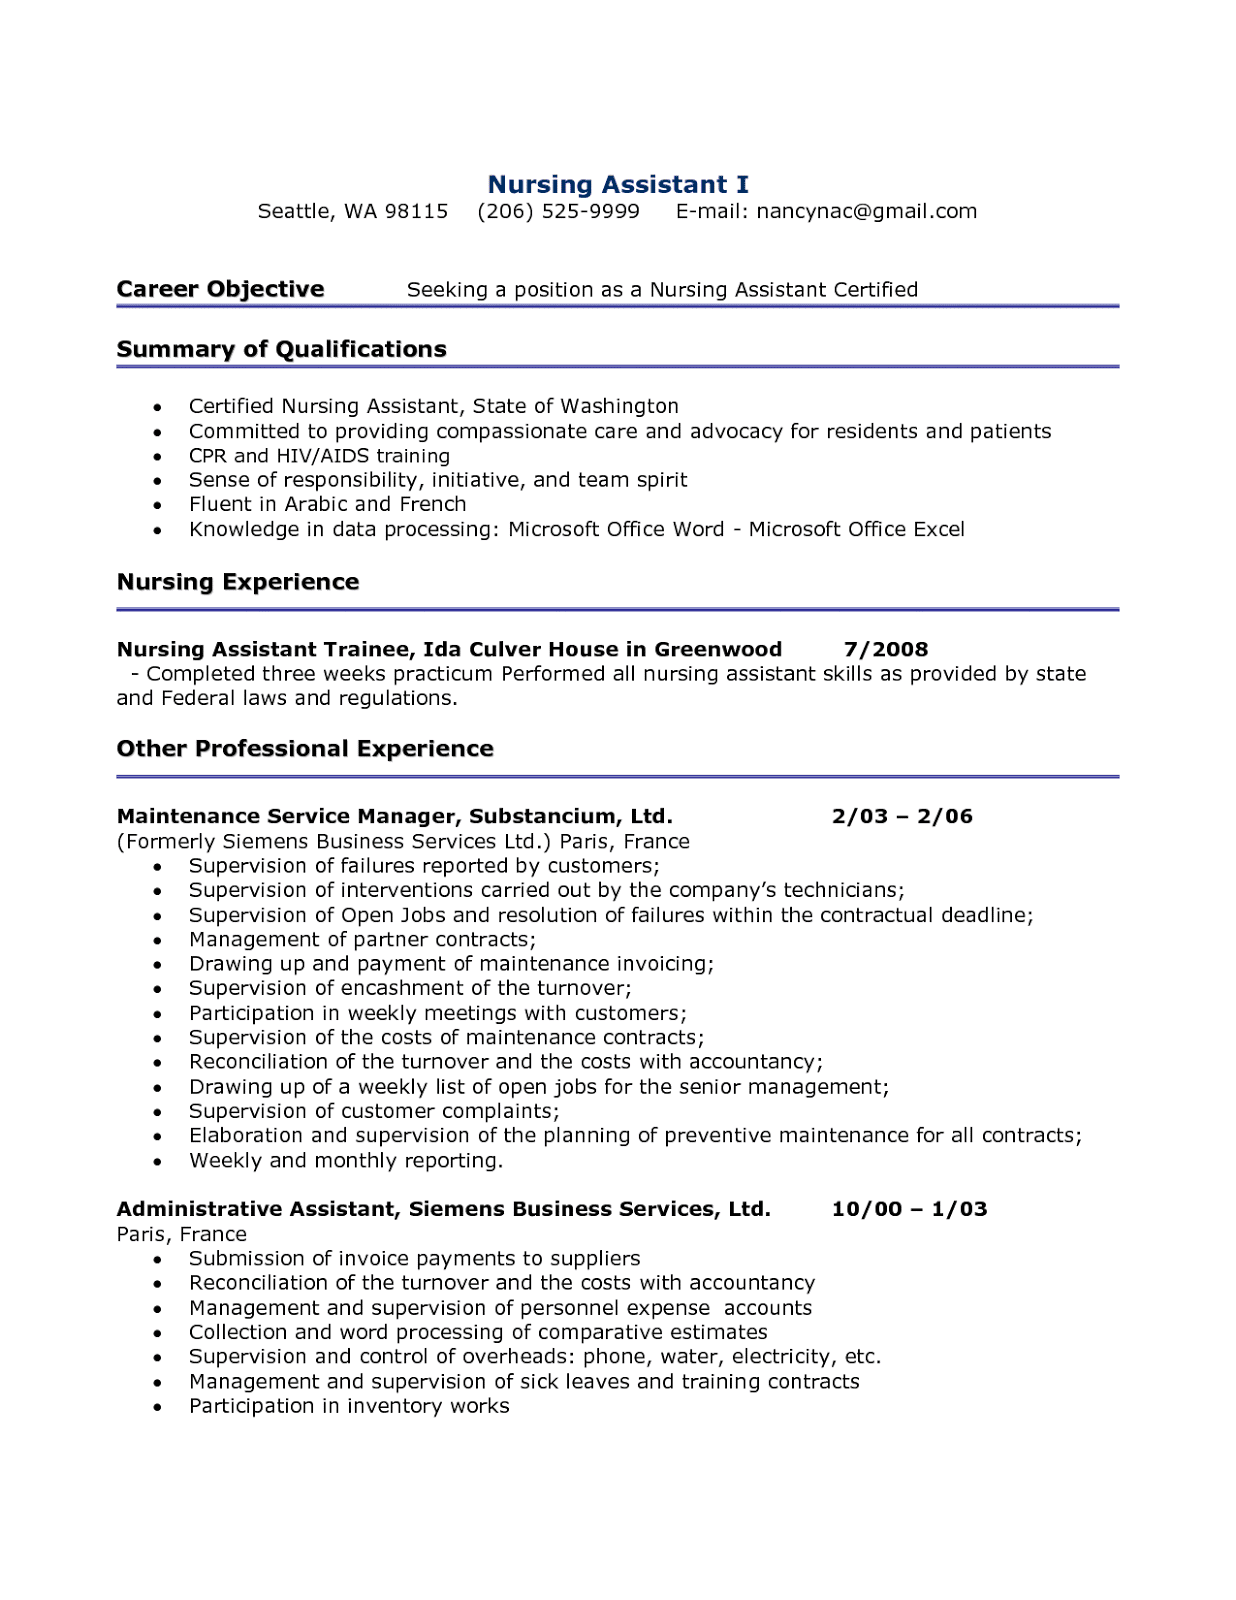 Nurses Resume Format Samples Resume Sample For Nursing Assistant Sample Resumes